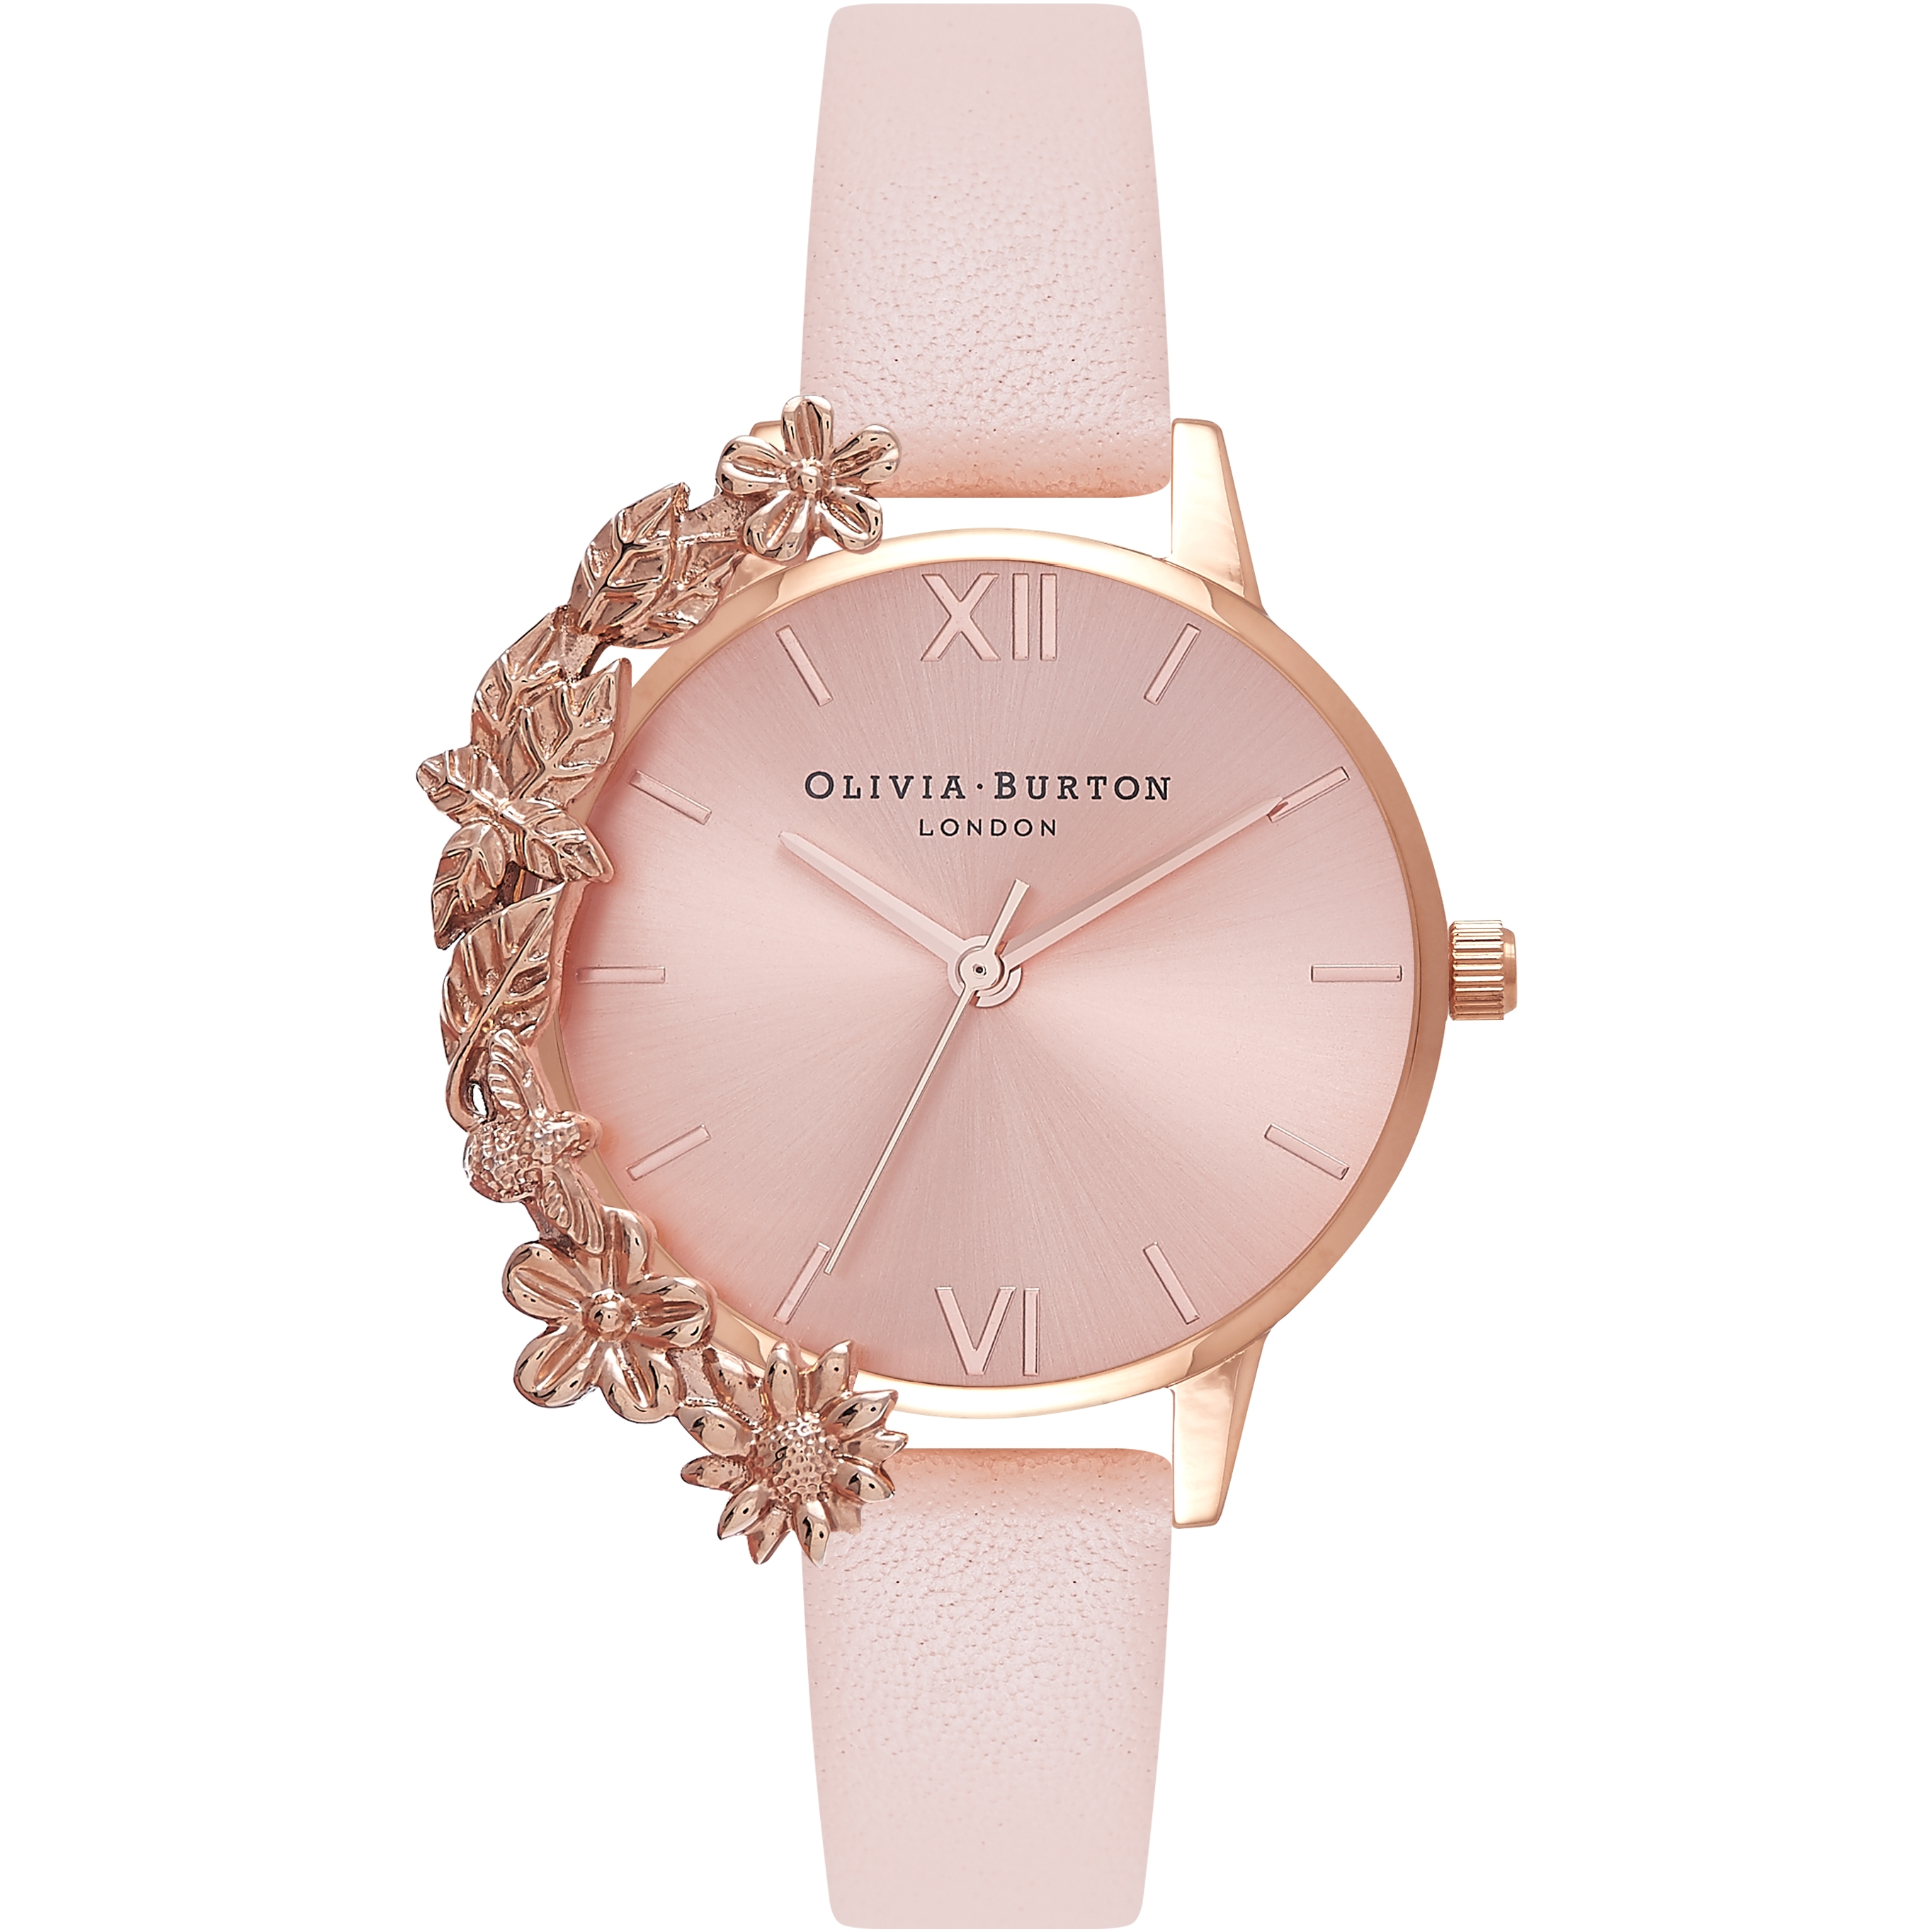 watch watches silver products raw b store peach rw paul christian